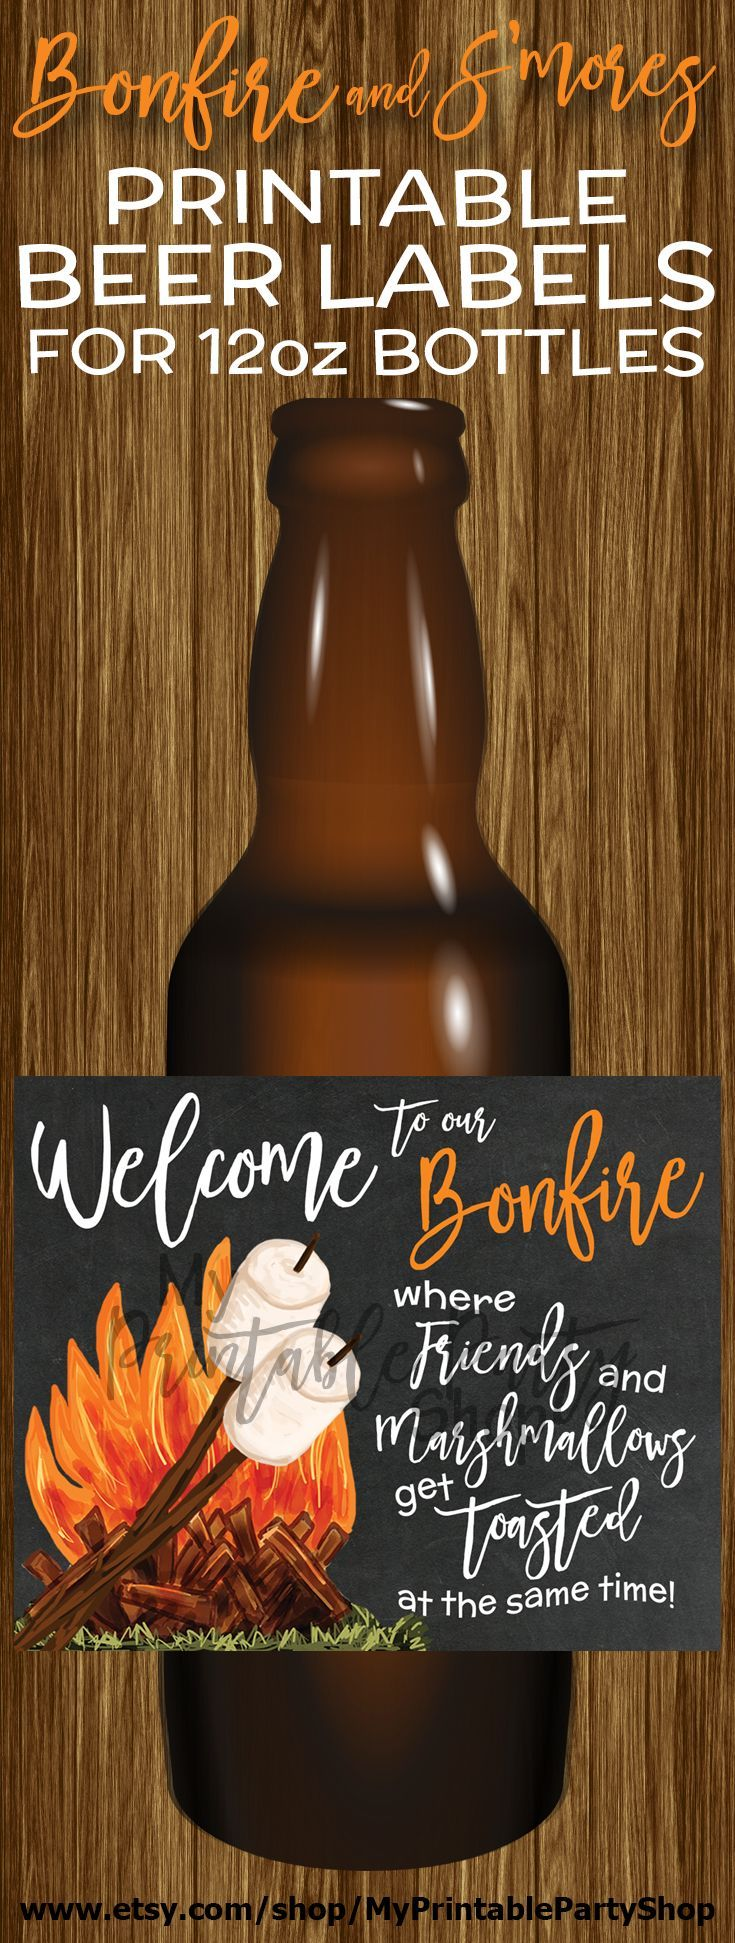 PRINTABLE Beer Labels, Beer Bottle Labels, Custom Beer Labels, S'mores Party, Bonfire Party, Outdoor Party, Backyard Party, Bachelor Party, Couples Shower, Engagement Party, Wedding Reception, Adullt Birthday Party, Anniversary https://www.etsy.com/ca/listing/467568060/printable-beer-labels-beer-bottle-labels